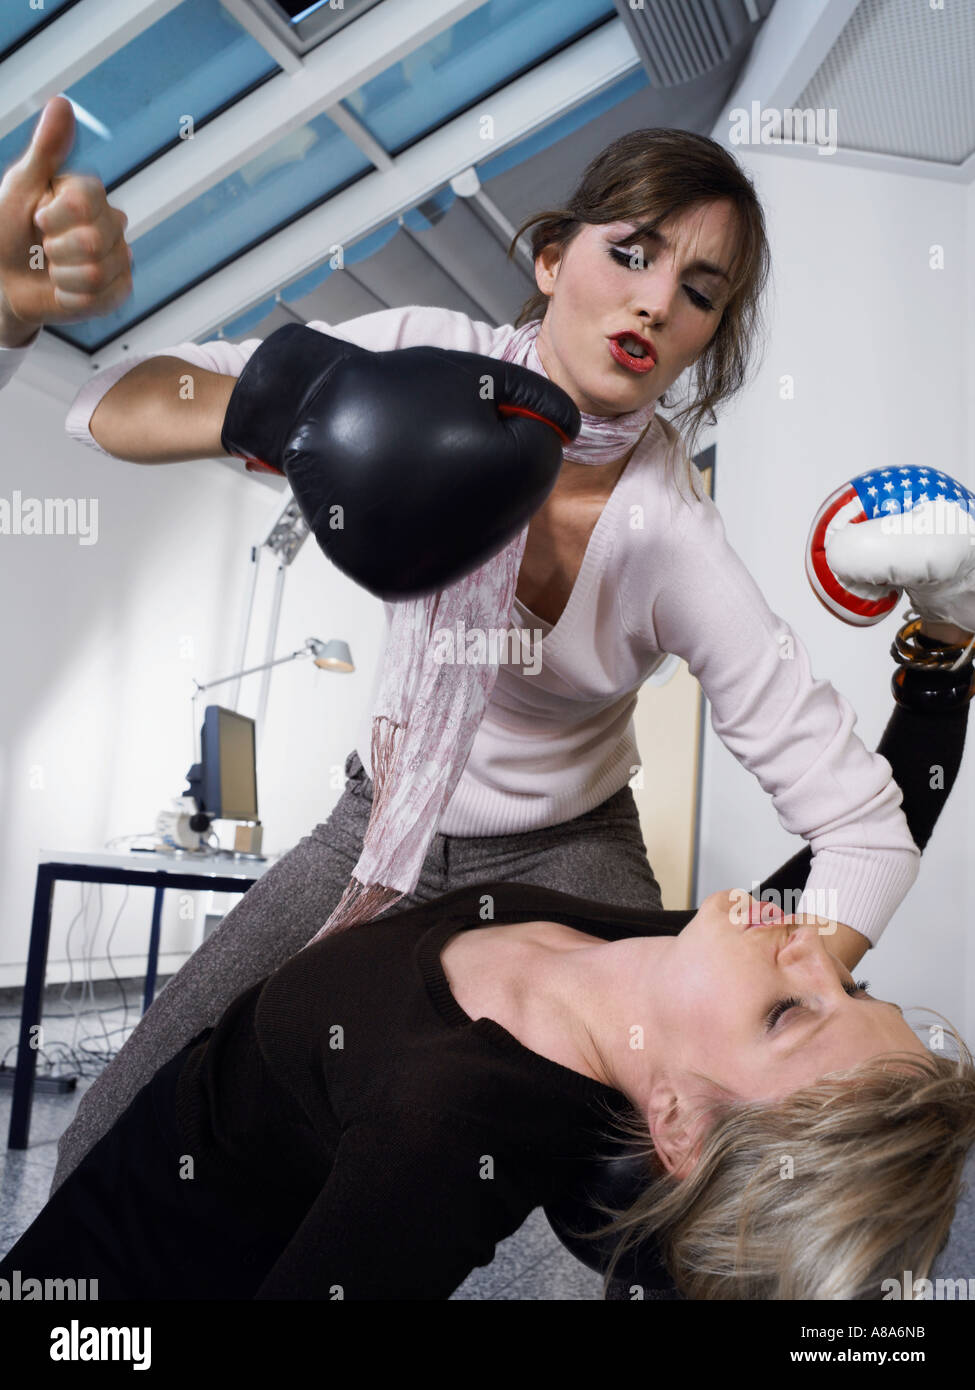 Female colleagues boxing - Stock Image